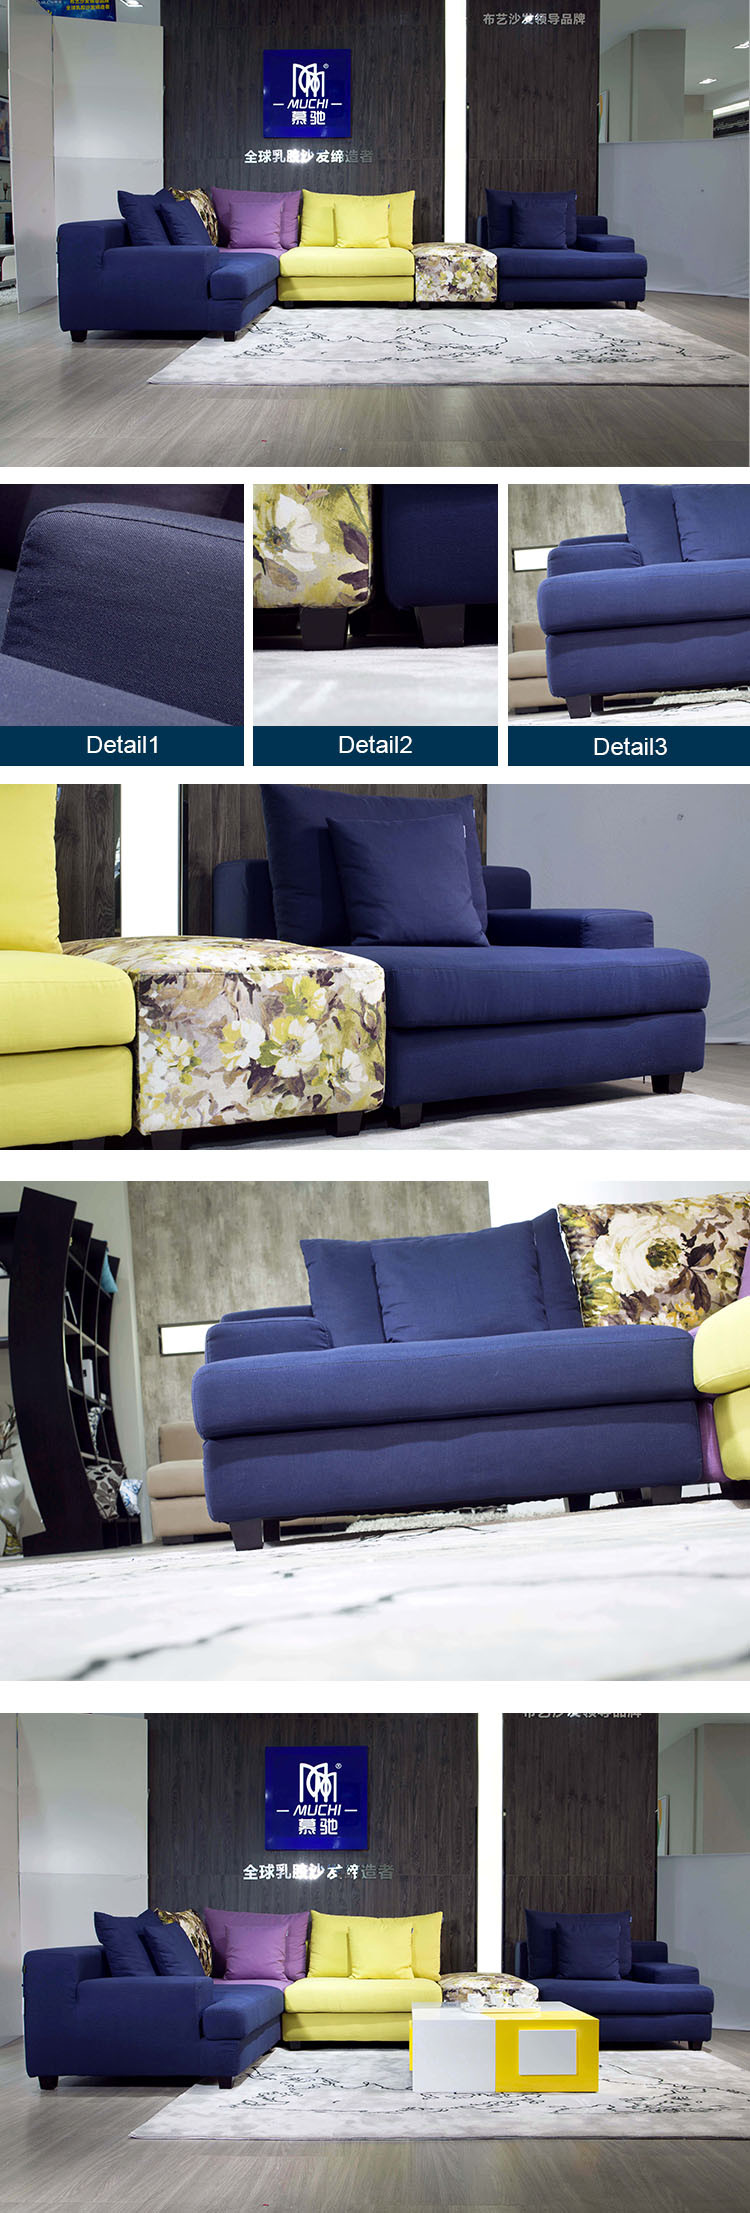 New trend painted chairs with dipped or raw legs jelanie - New Trend Raw Leg Furniture Jelanie